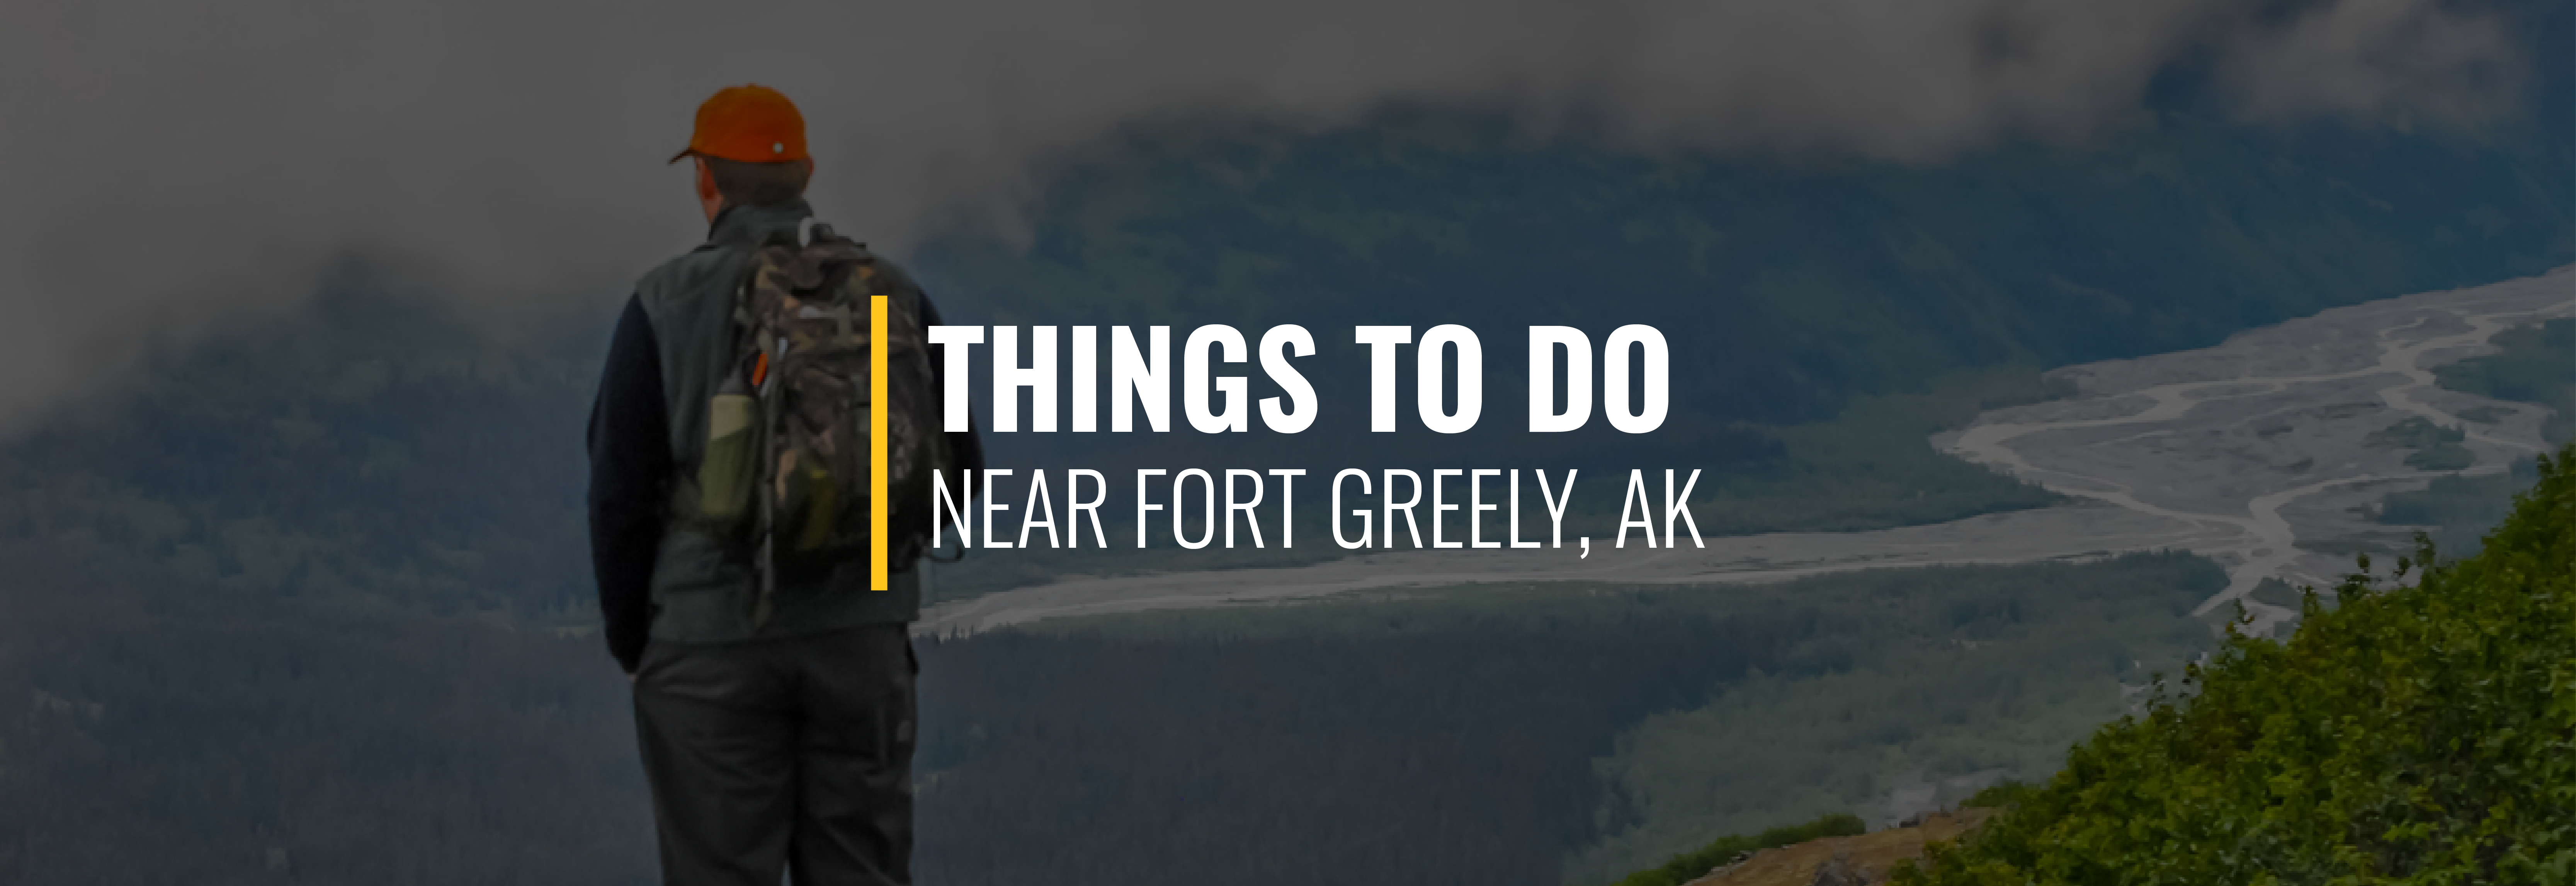 Things to Do In Fort Greely, Alaska